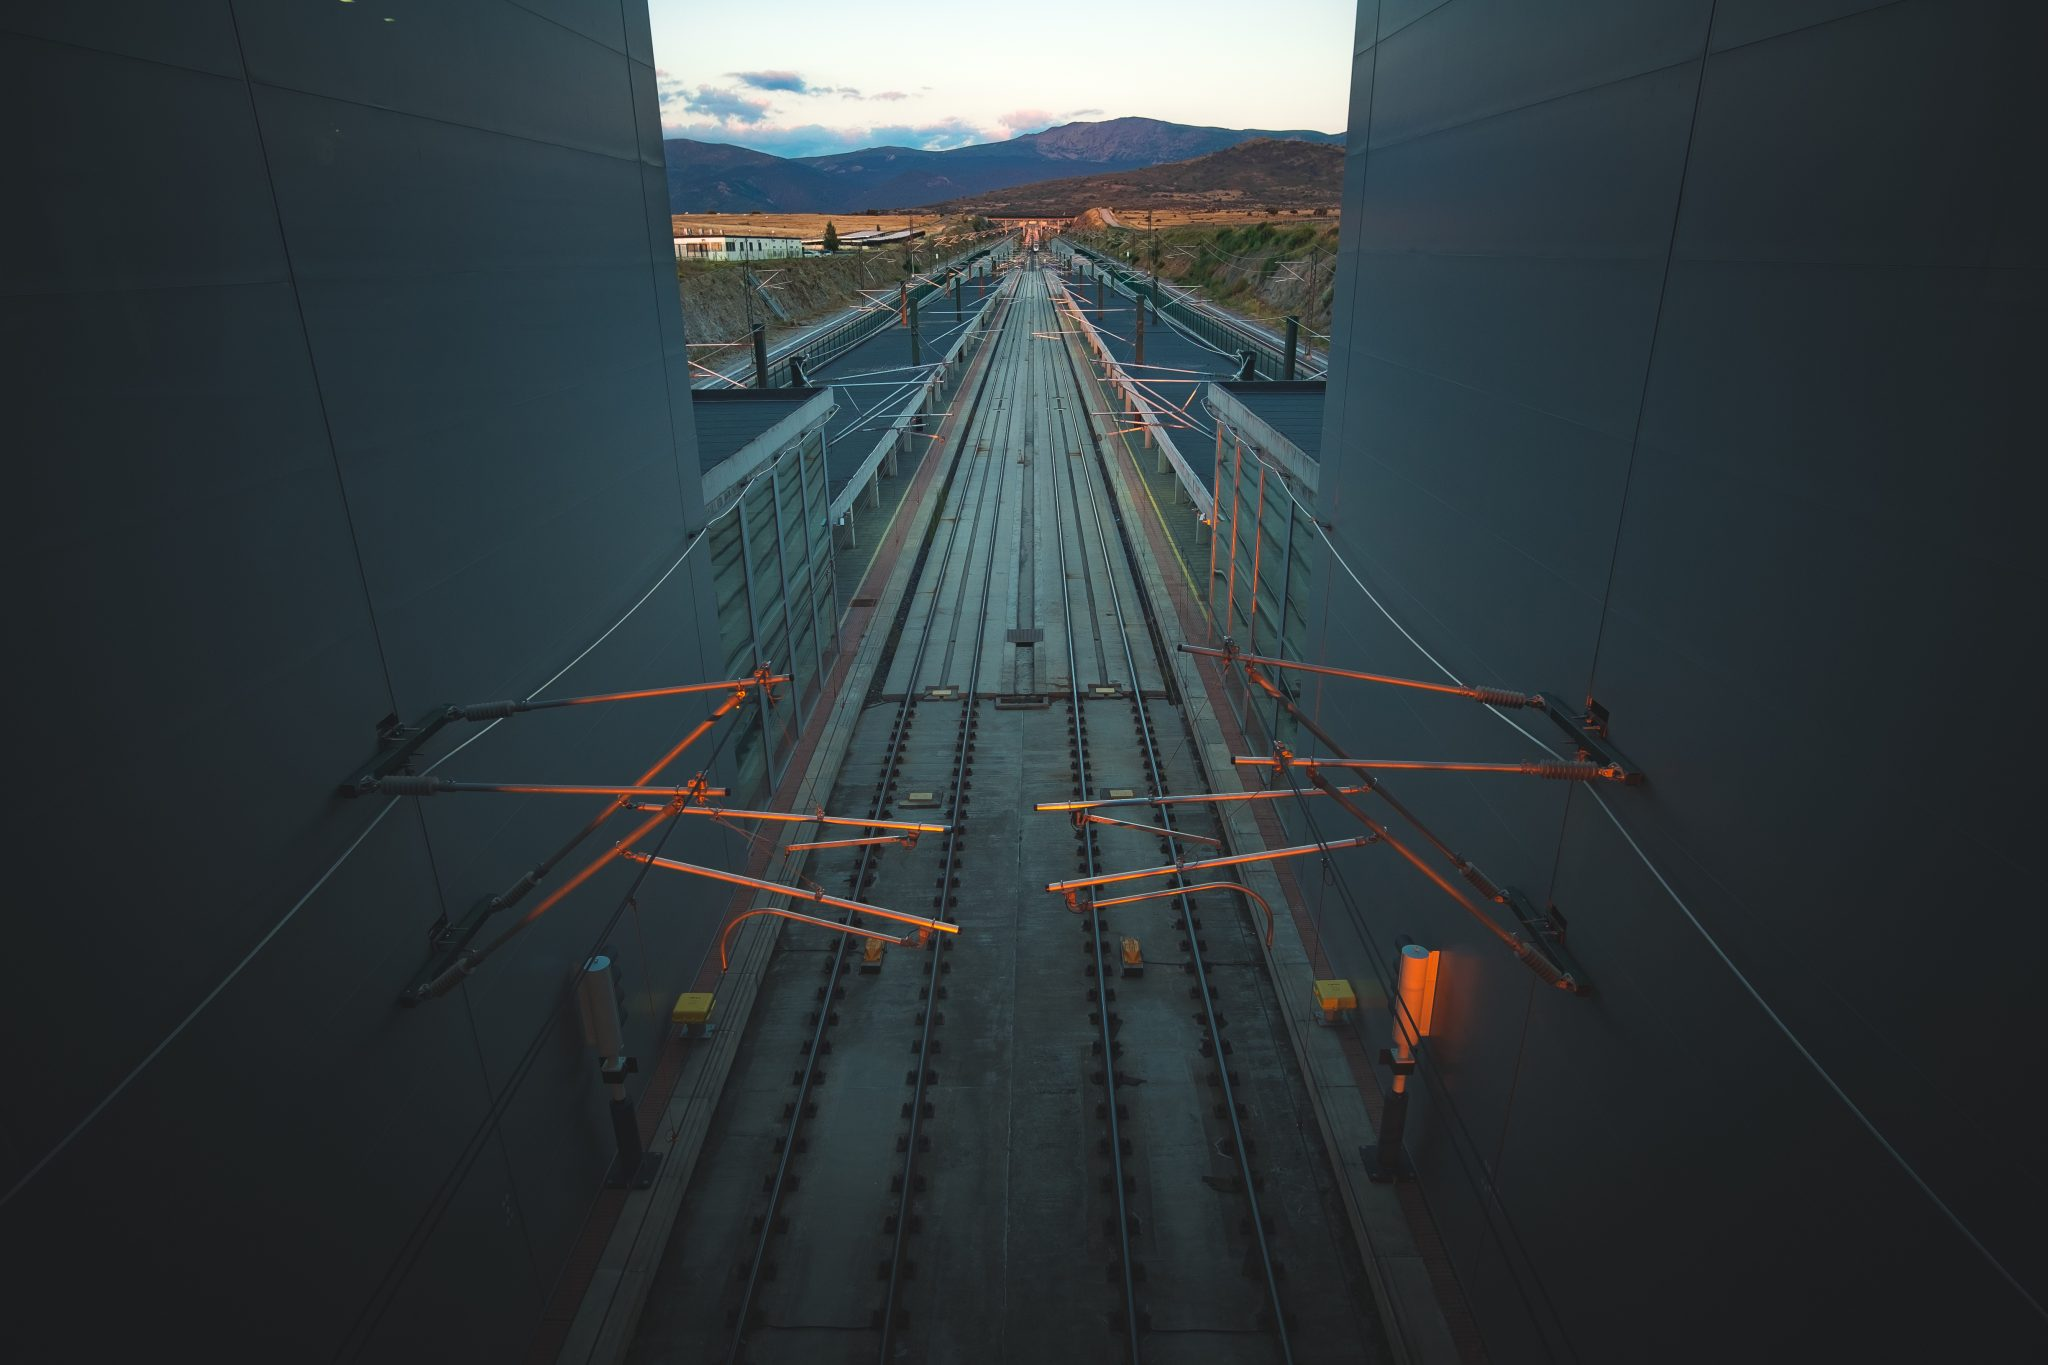 View of the rails in the the train station of Segovia shot by Jo Kassis